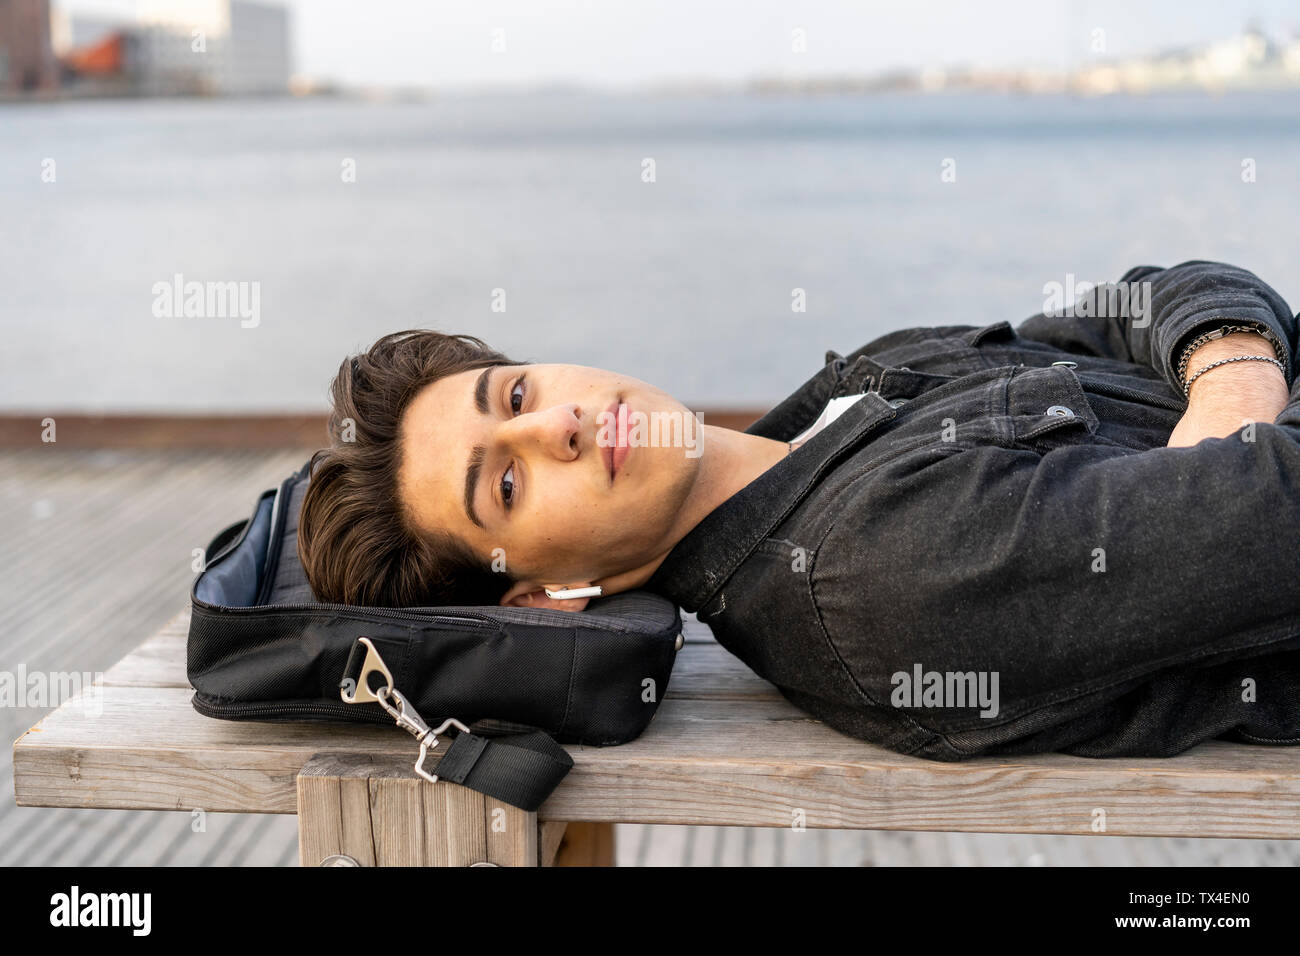 Denmark, Copenhagen, portrait of young man with earbuds lying on a bench at the waterfront - Stock Image